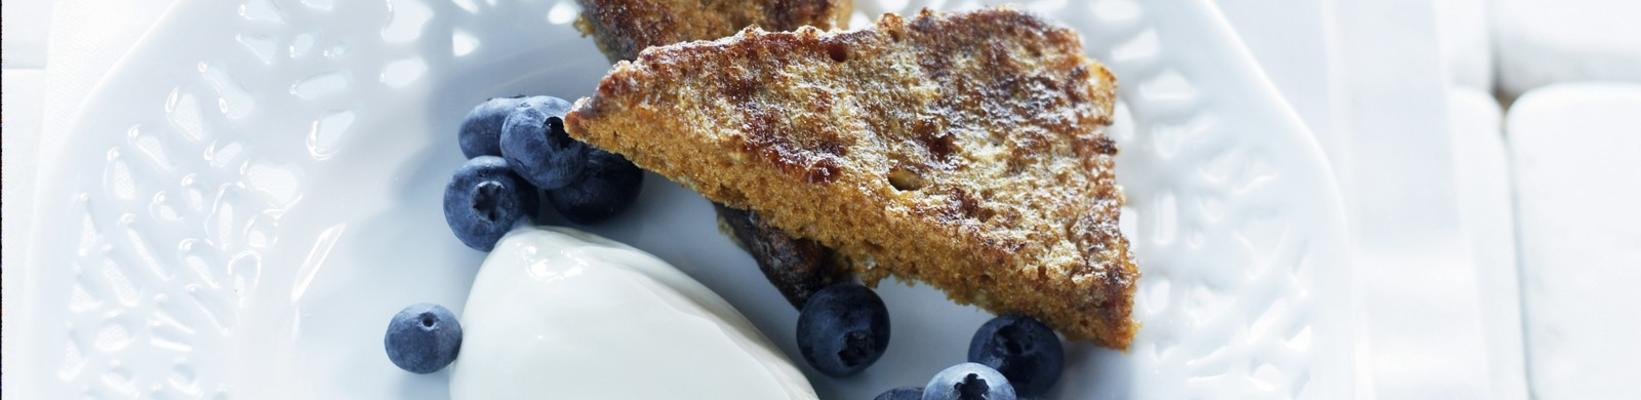 French toast of gingerbread with blueberries and hanging cup